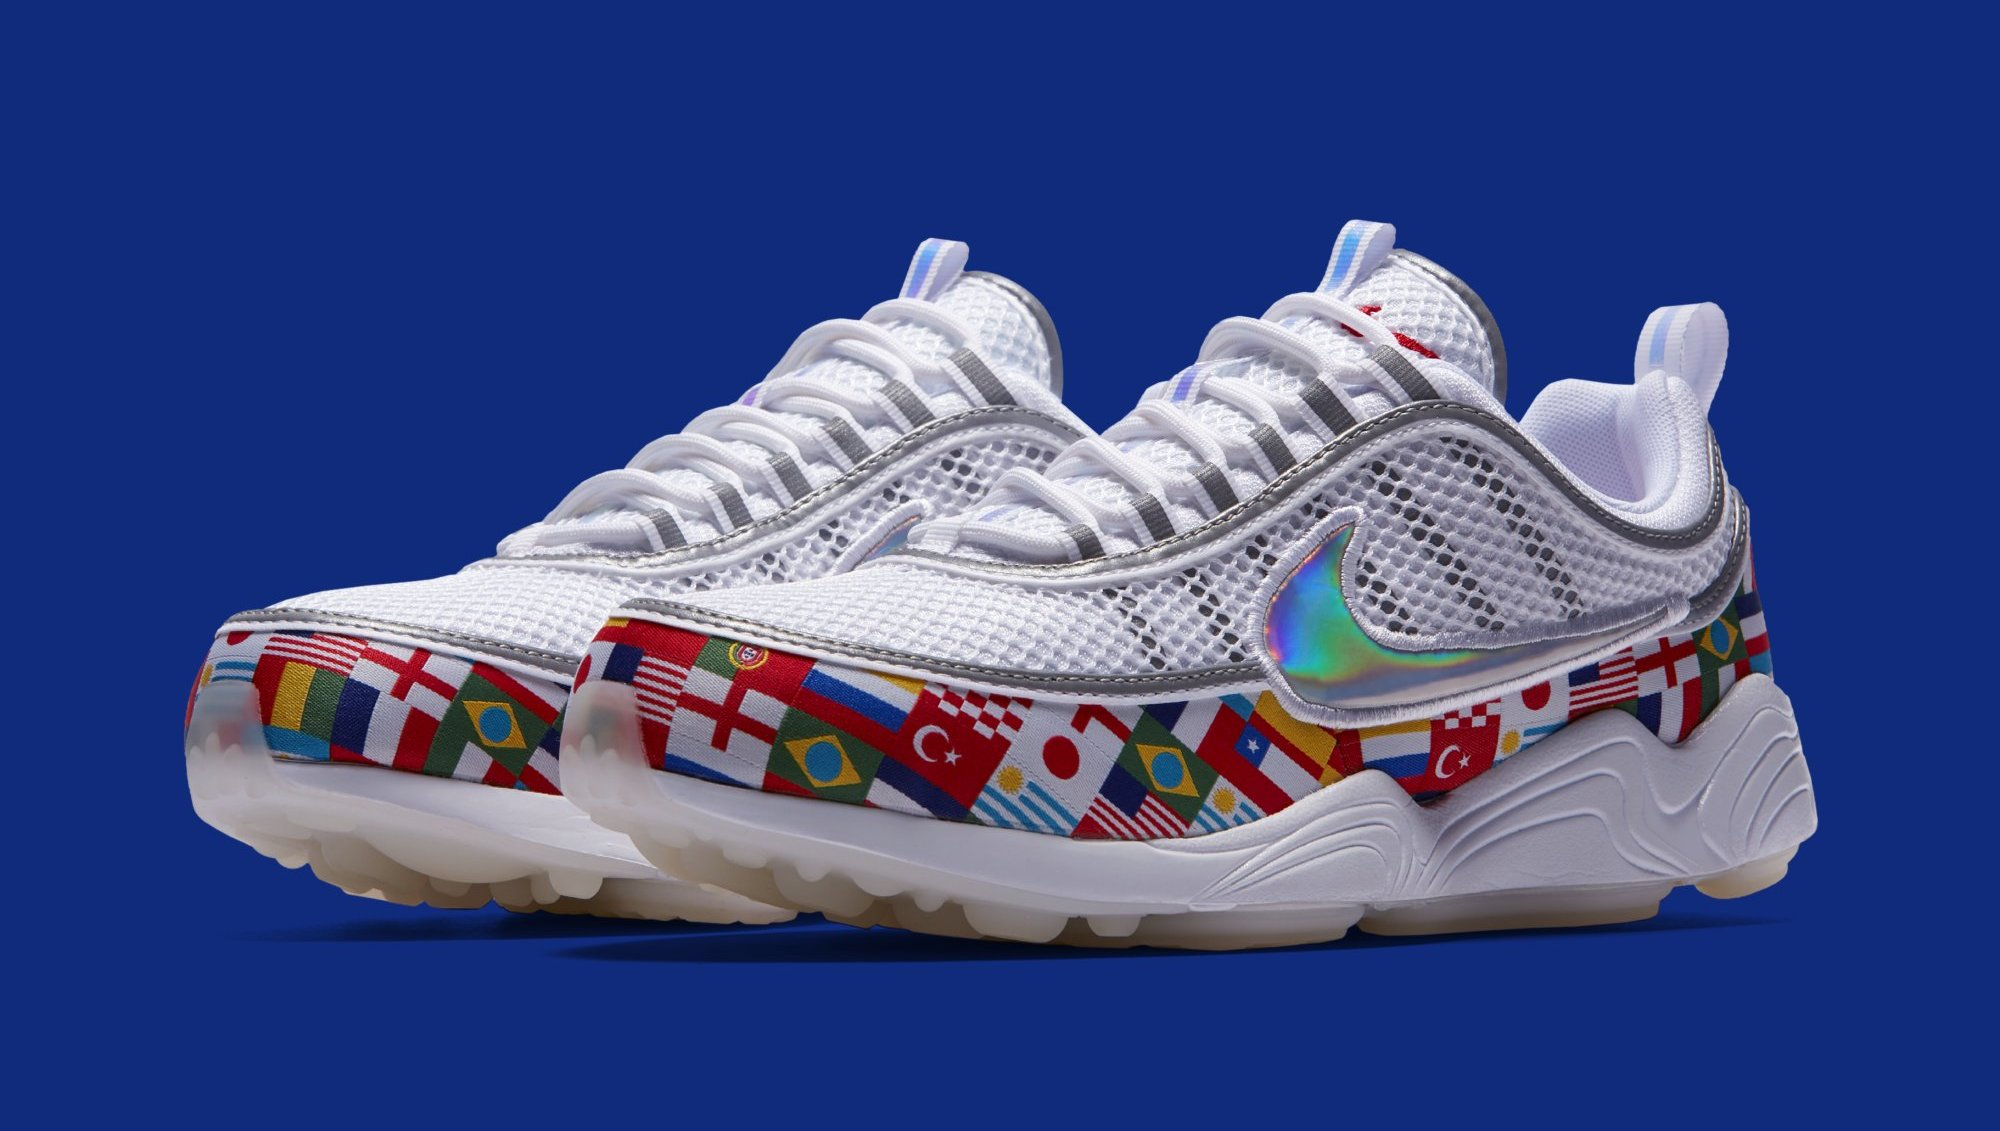 new concept 5ff7f 7afa5 Nike Air Max Plus AO5117-100 Air Max 90 AO5119-100 Air Zoom Spiridon  AO5121-100  NIC  Pack Release Date   Sole Collector